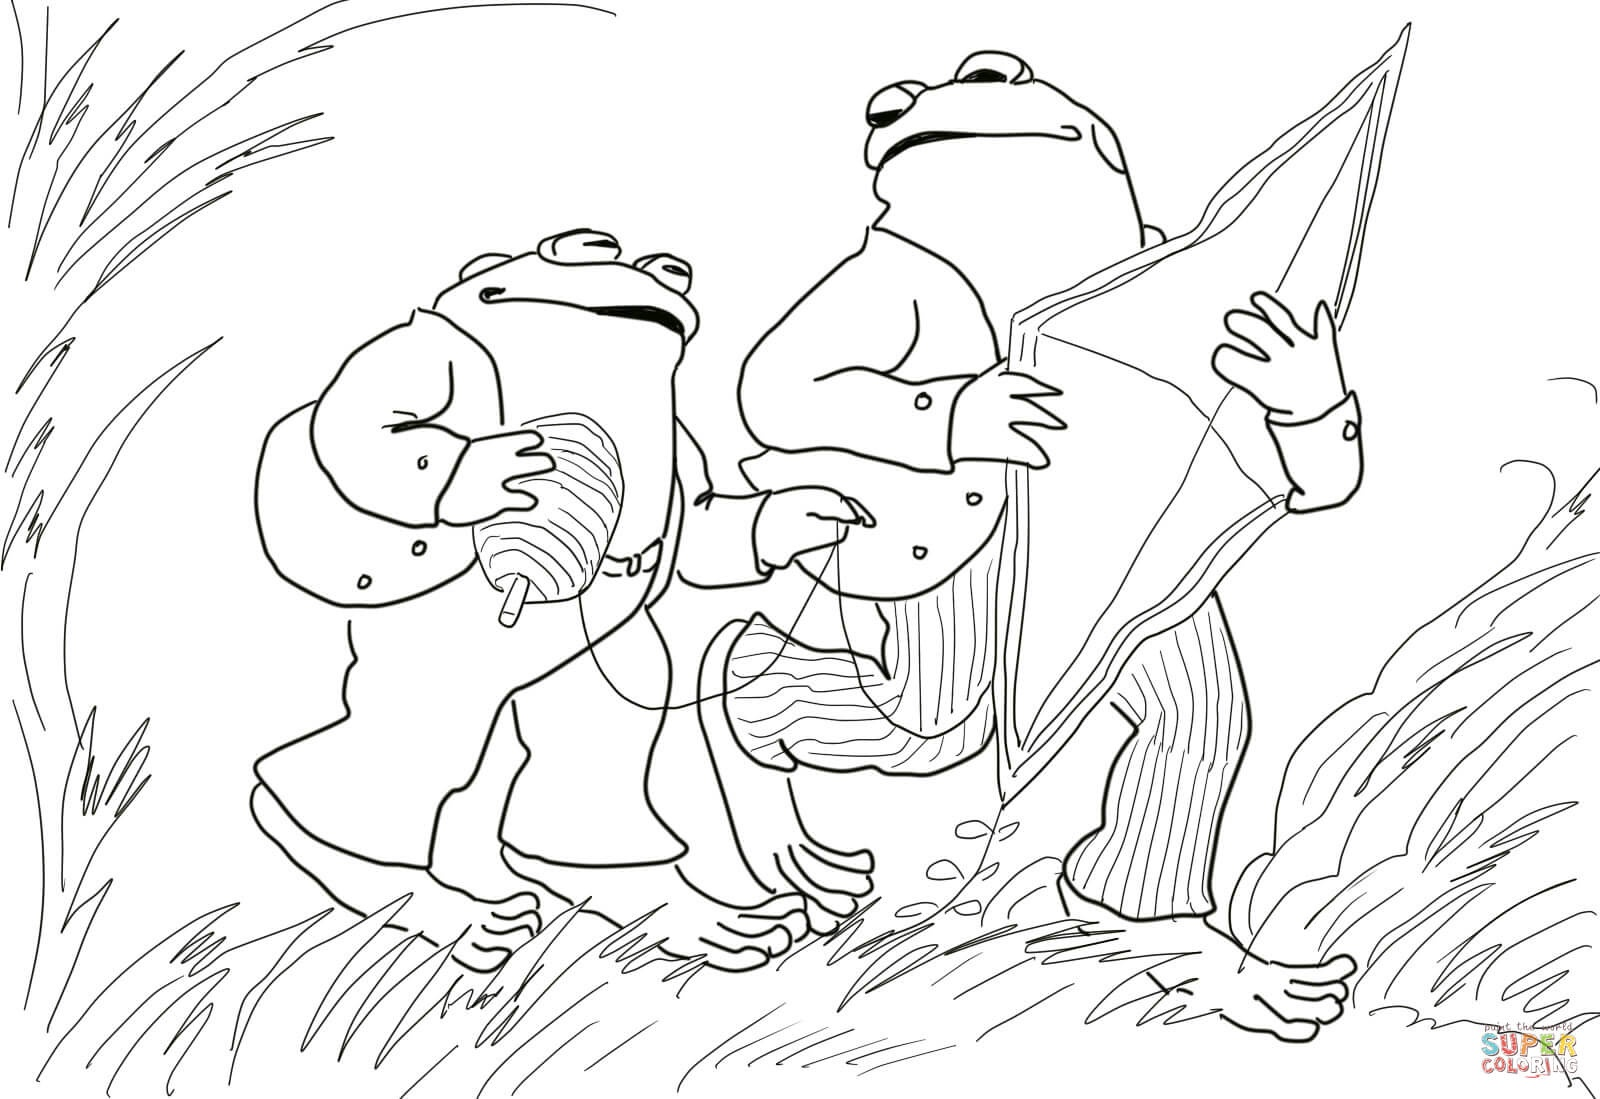 Days With Frog And Toad Coloring Page | Free Printable Coloring Pages - Free Frog And Toad Are Friends Printables